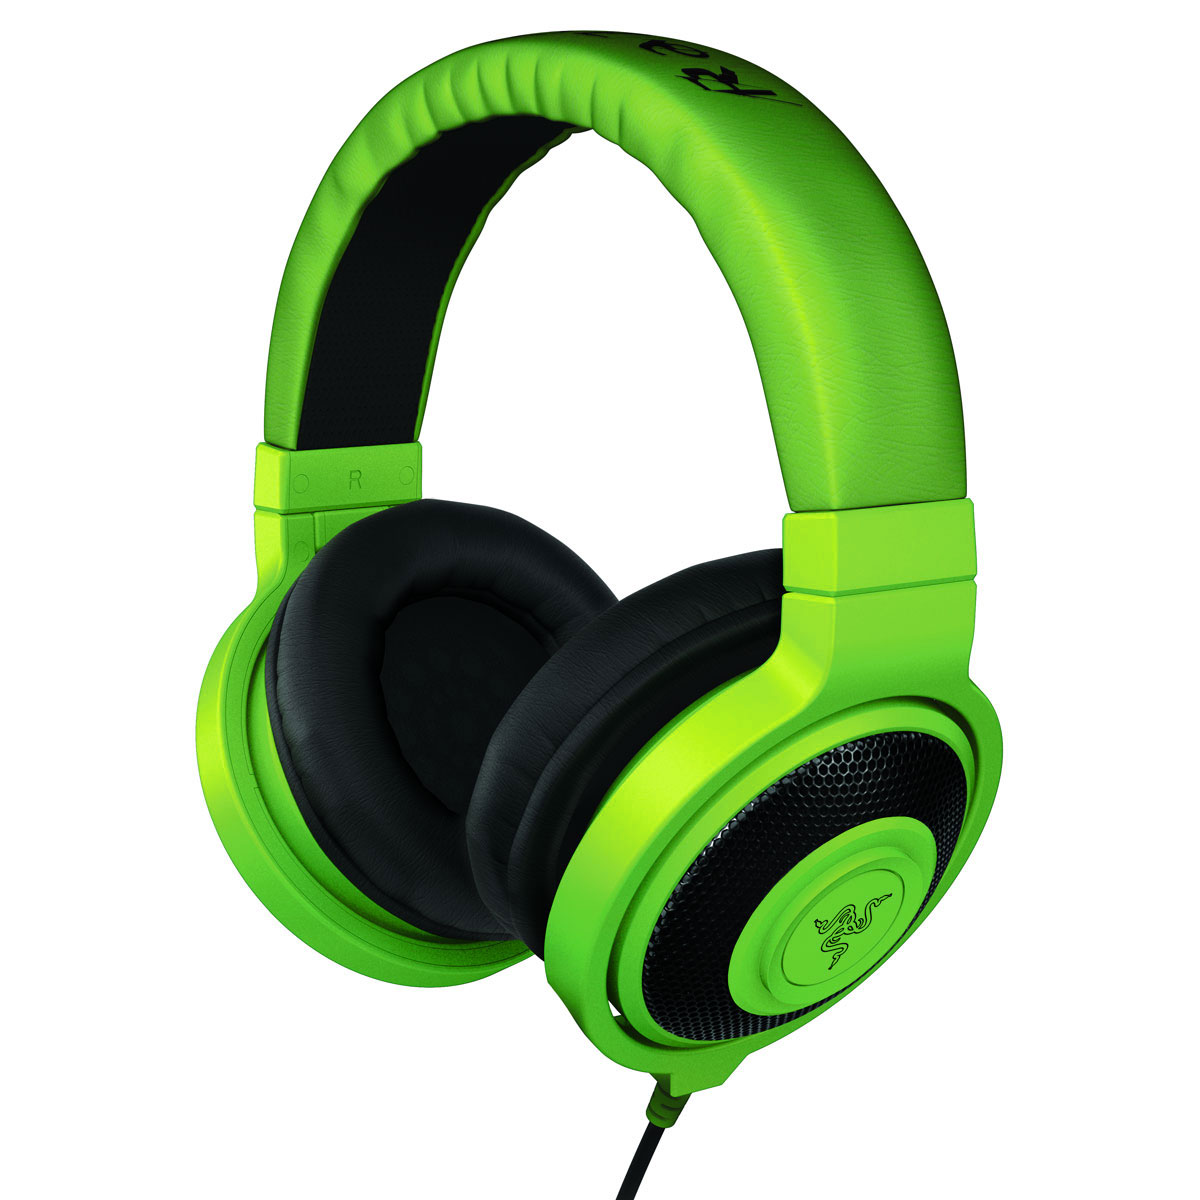 razer kraken vert casque razer sur. Black Bedroom Furniture Sets. Home Design Ideas